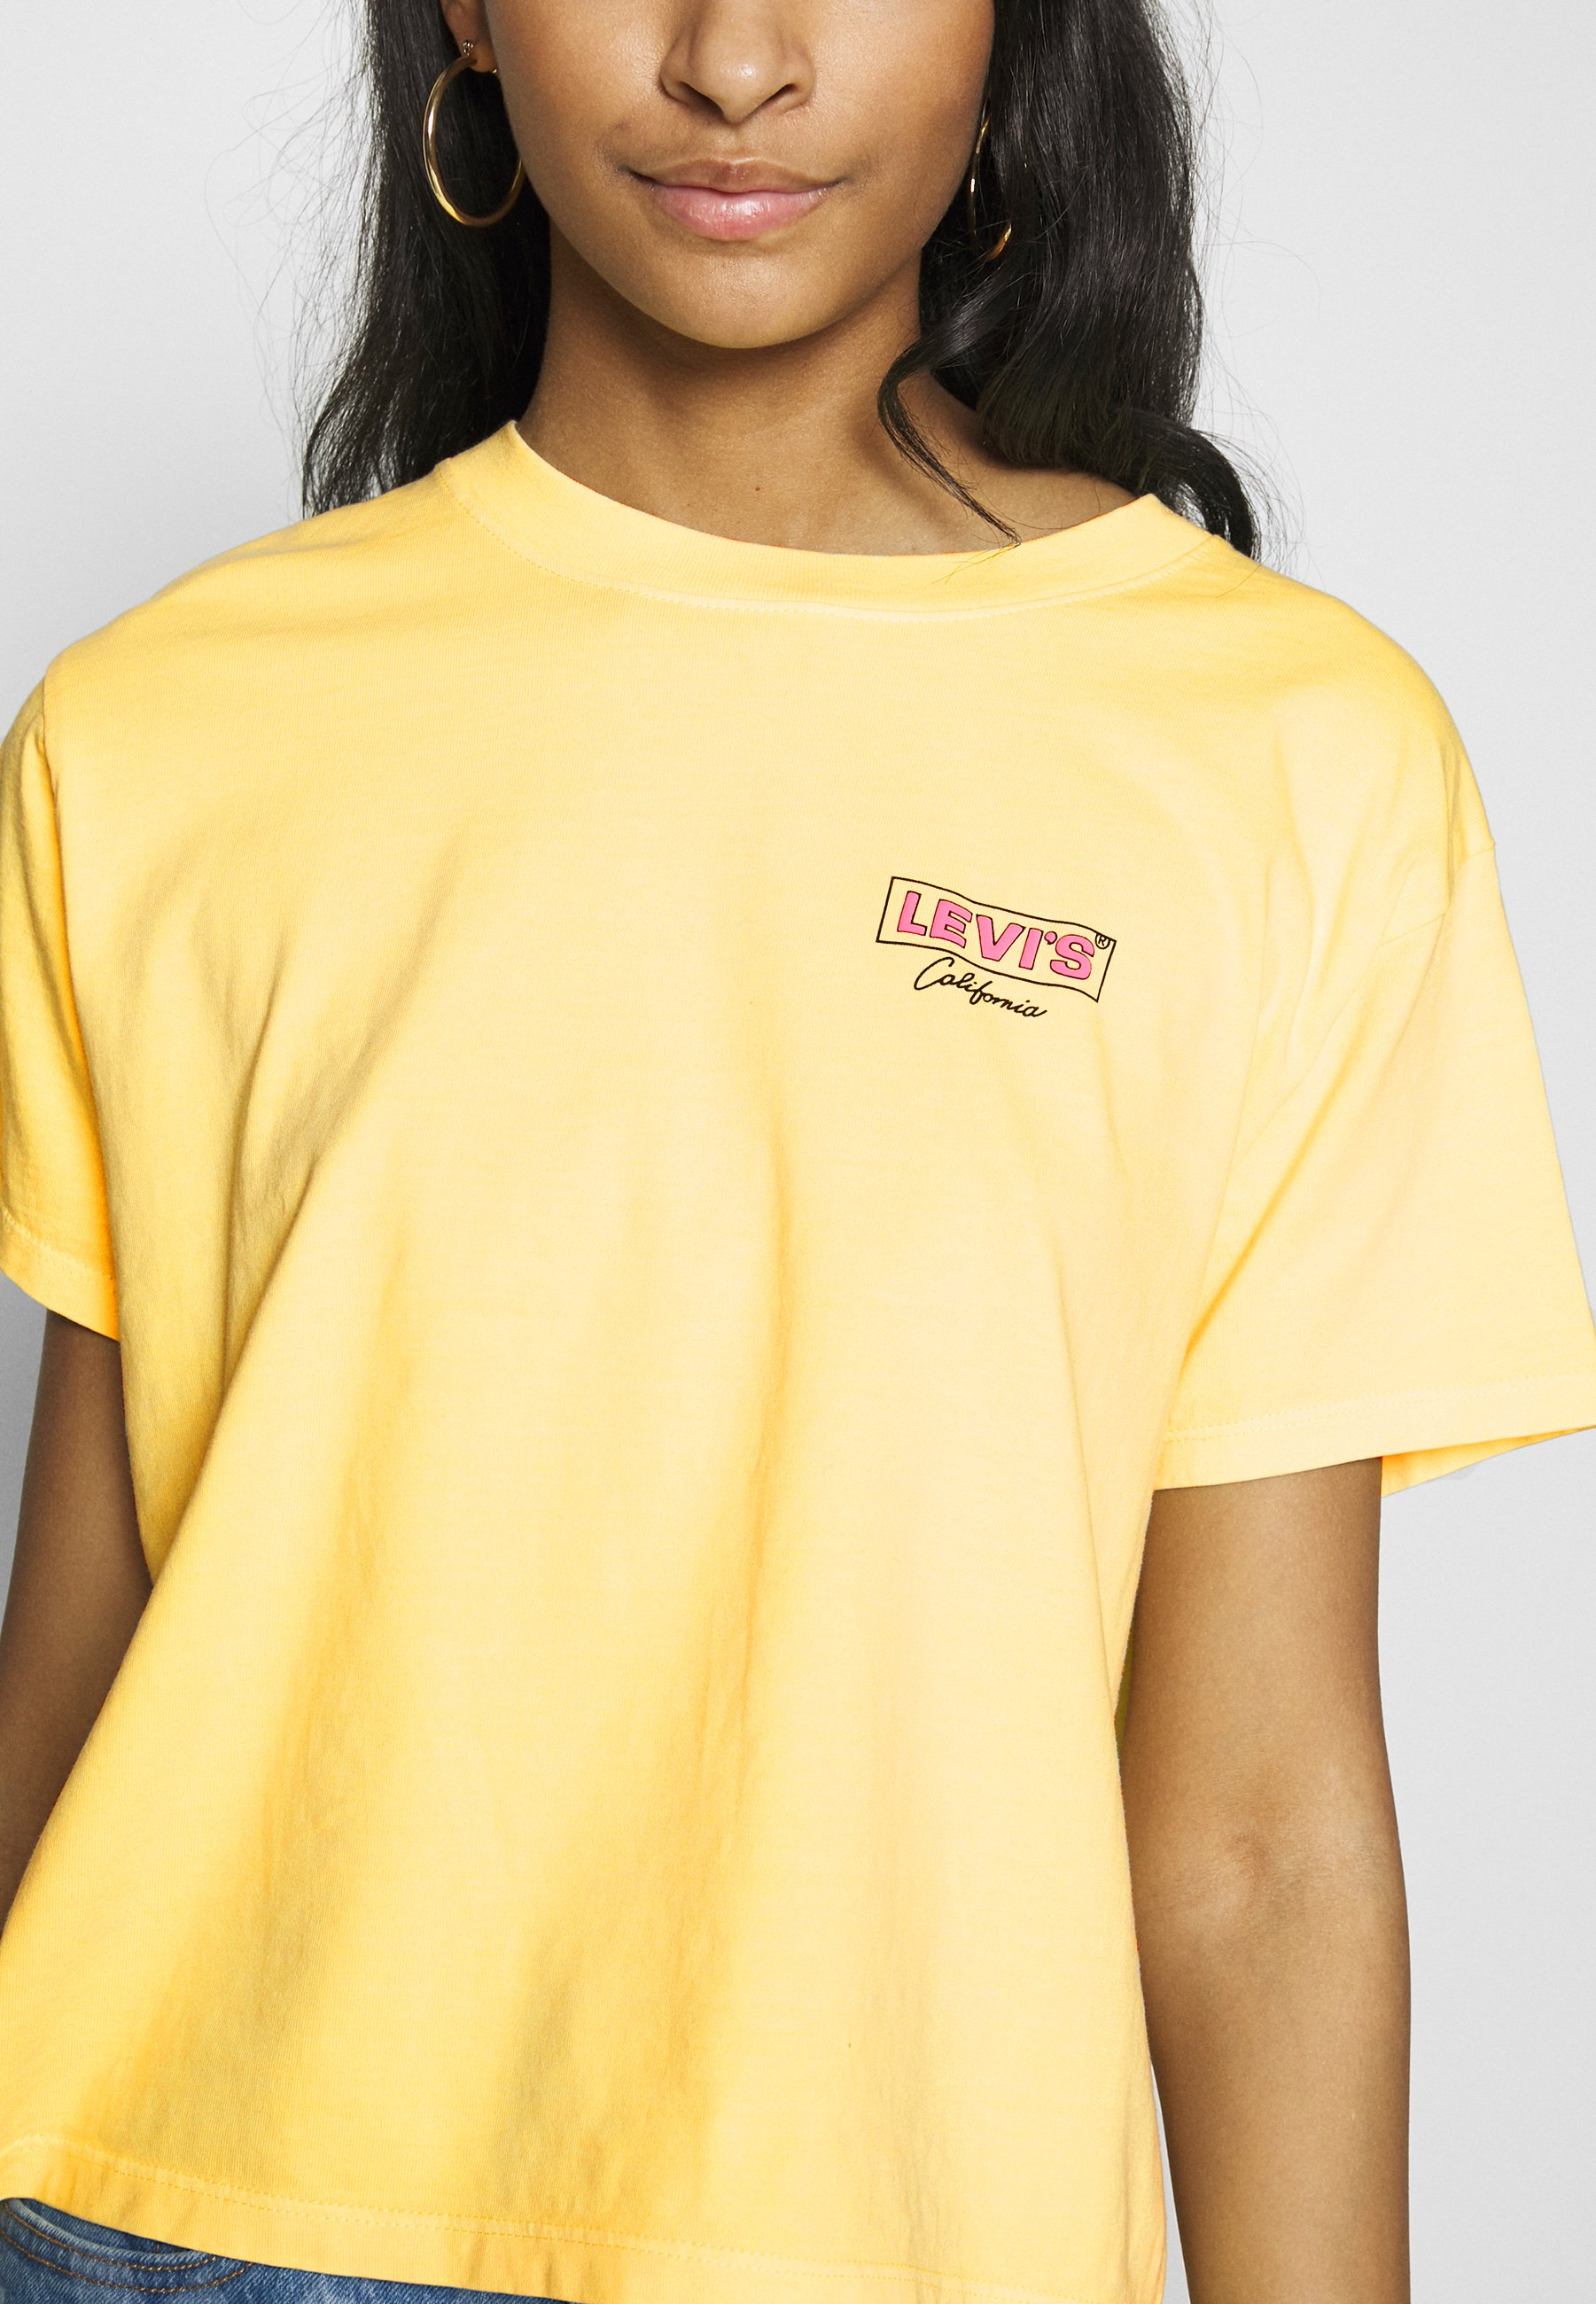 Levi's® Graphic Varsity Tee - T-shirts Med Print Yellow/gul